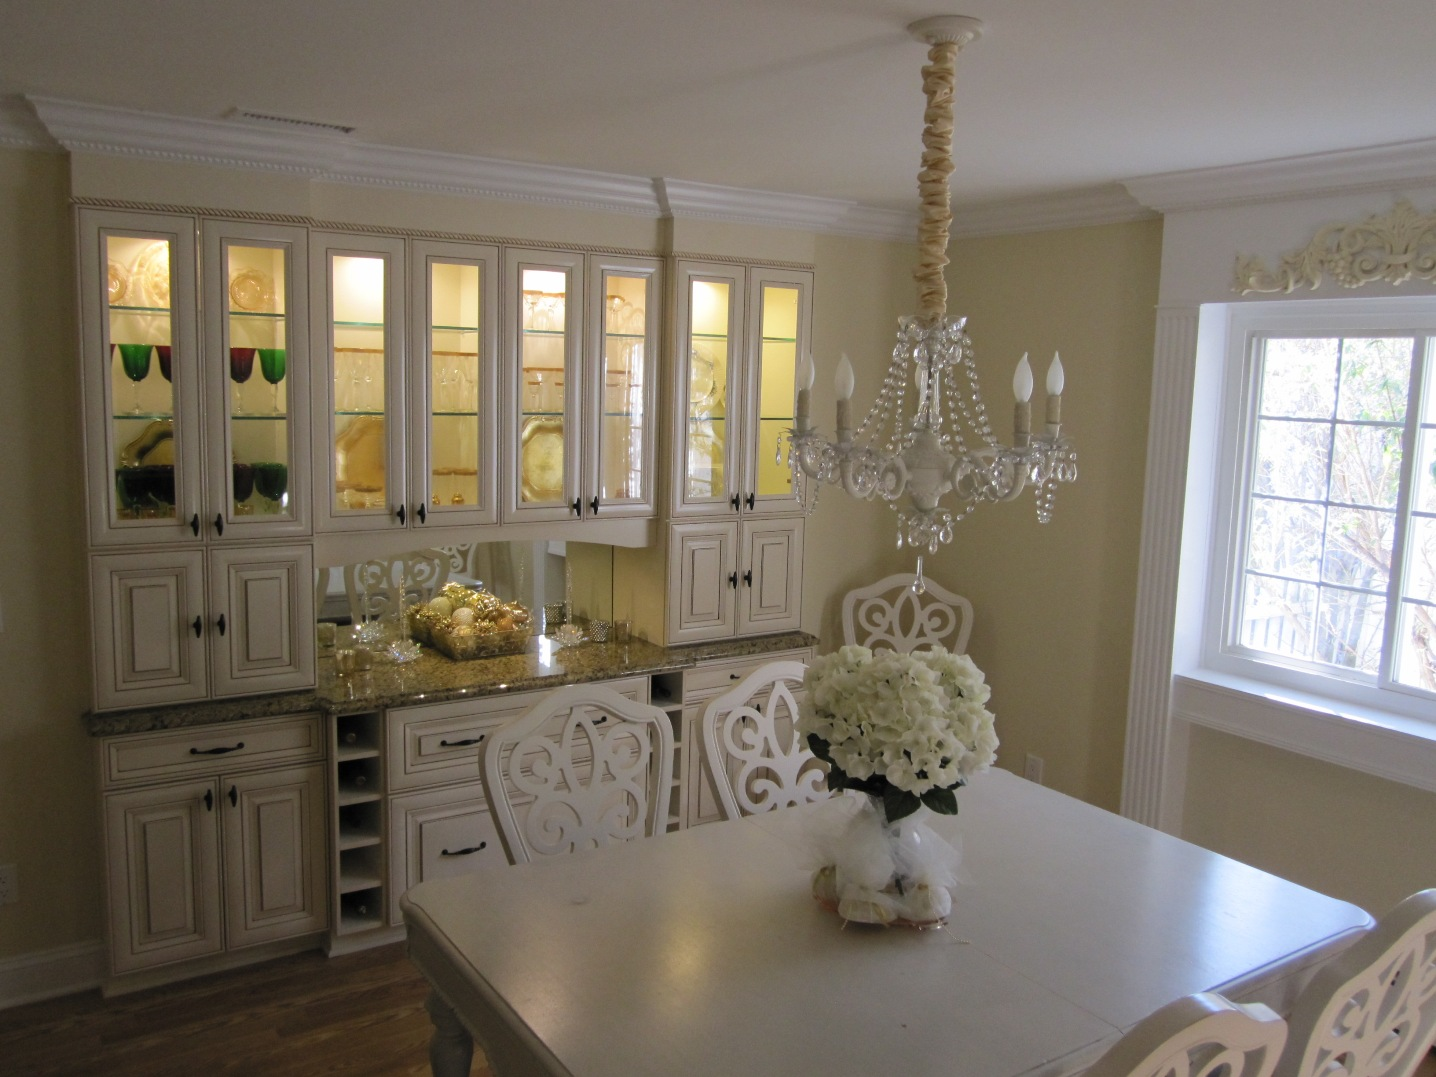 Dining room cabinets a necessity for organized elegant for Dining room cabinets